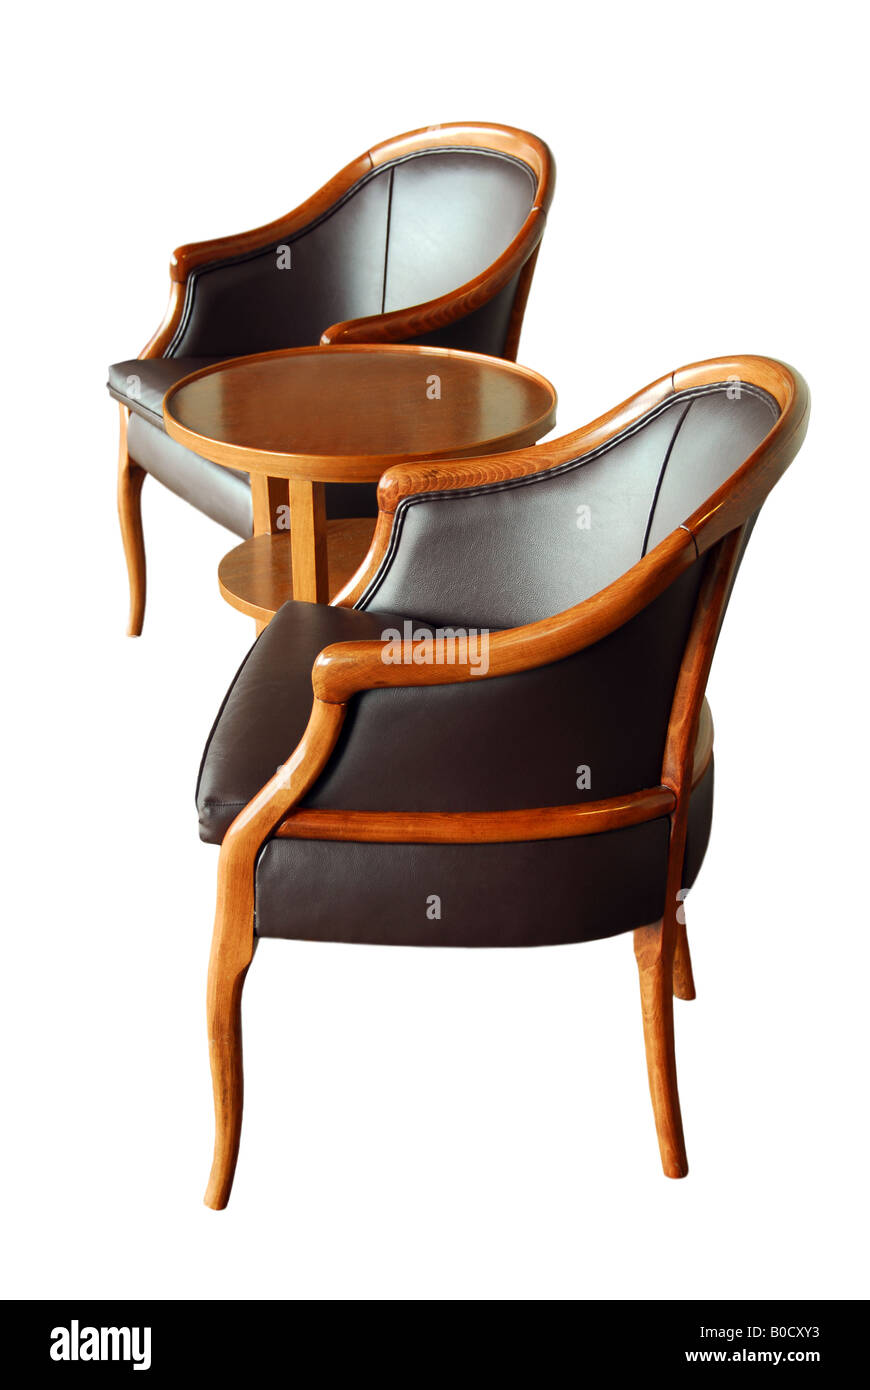 Table With Two Chairs Furniture Two Chairs And A Coffee Table Isolated On White